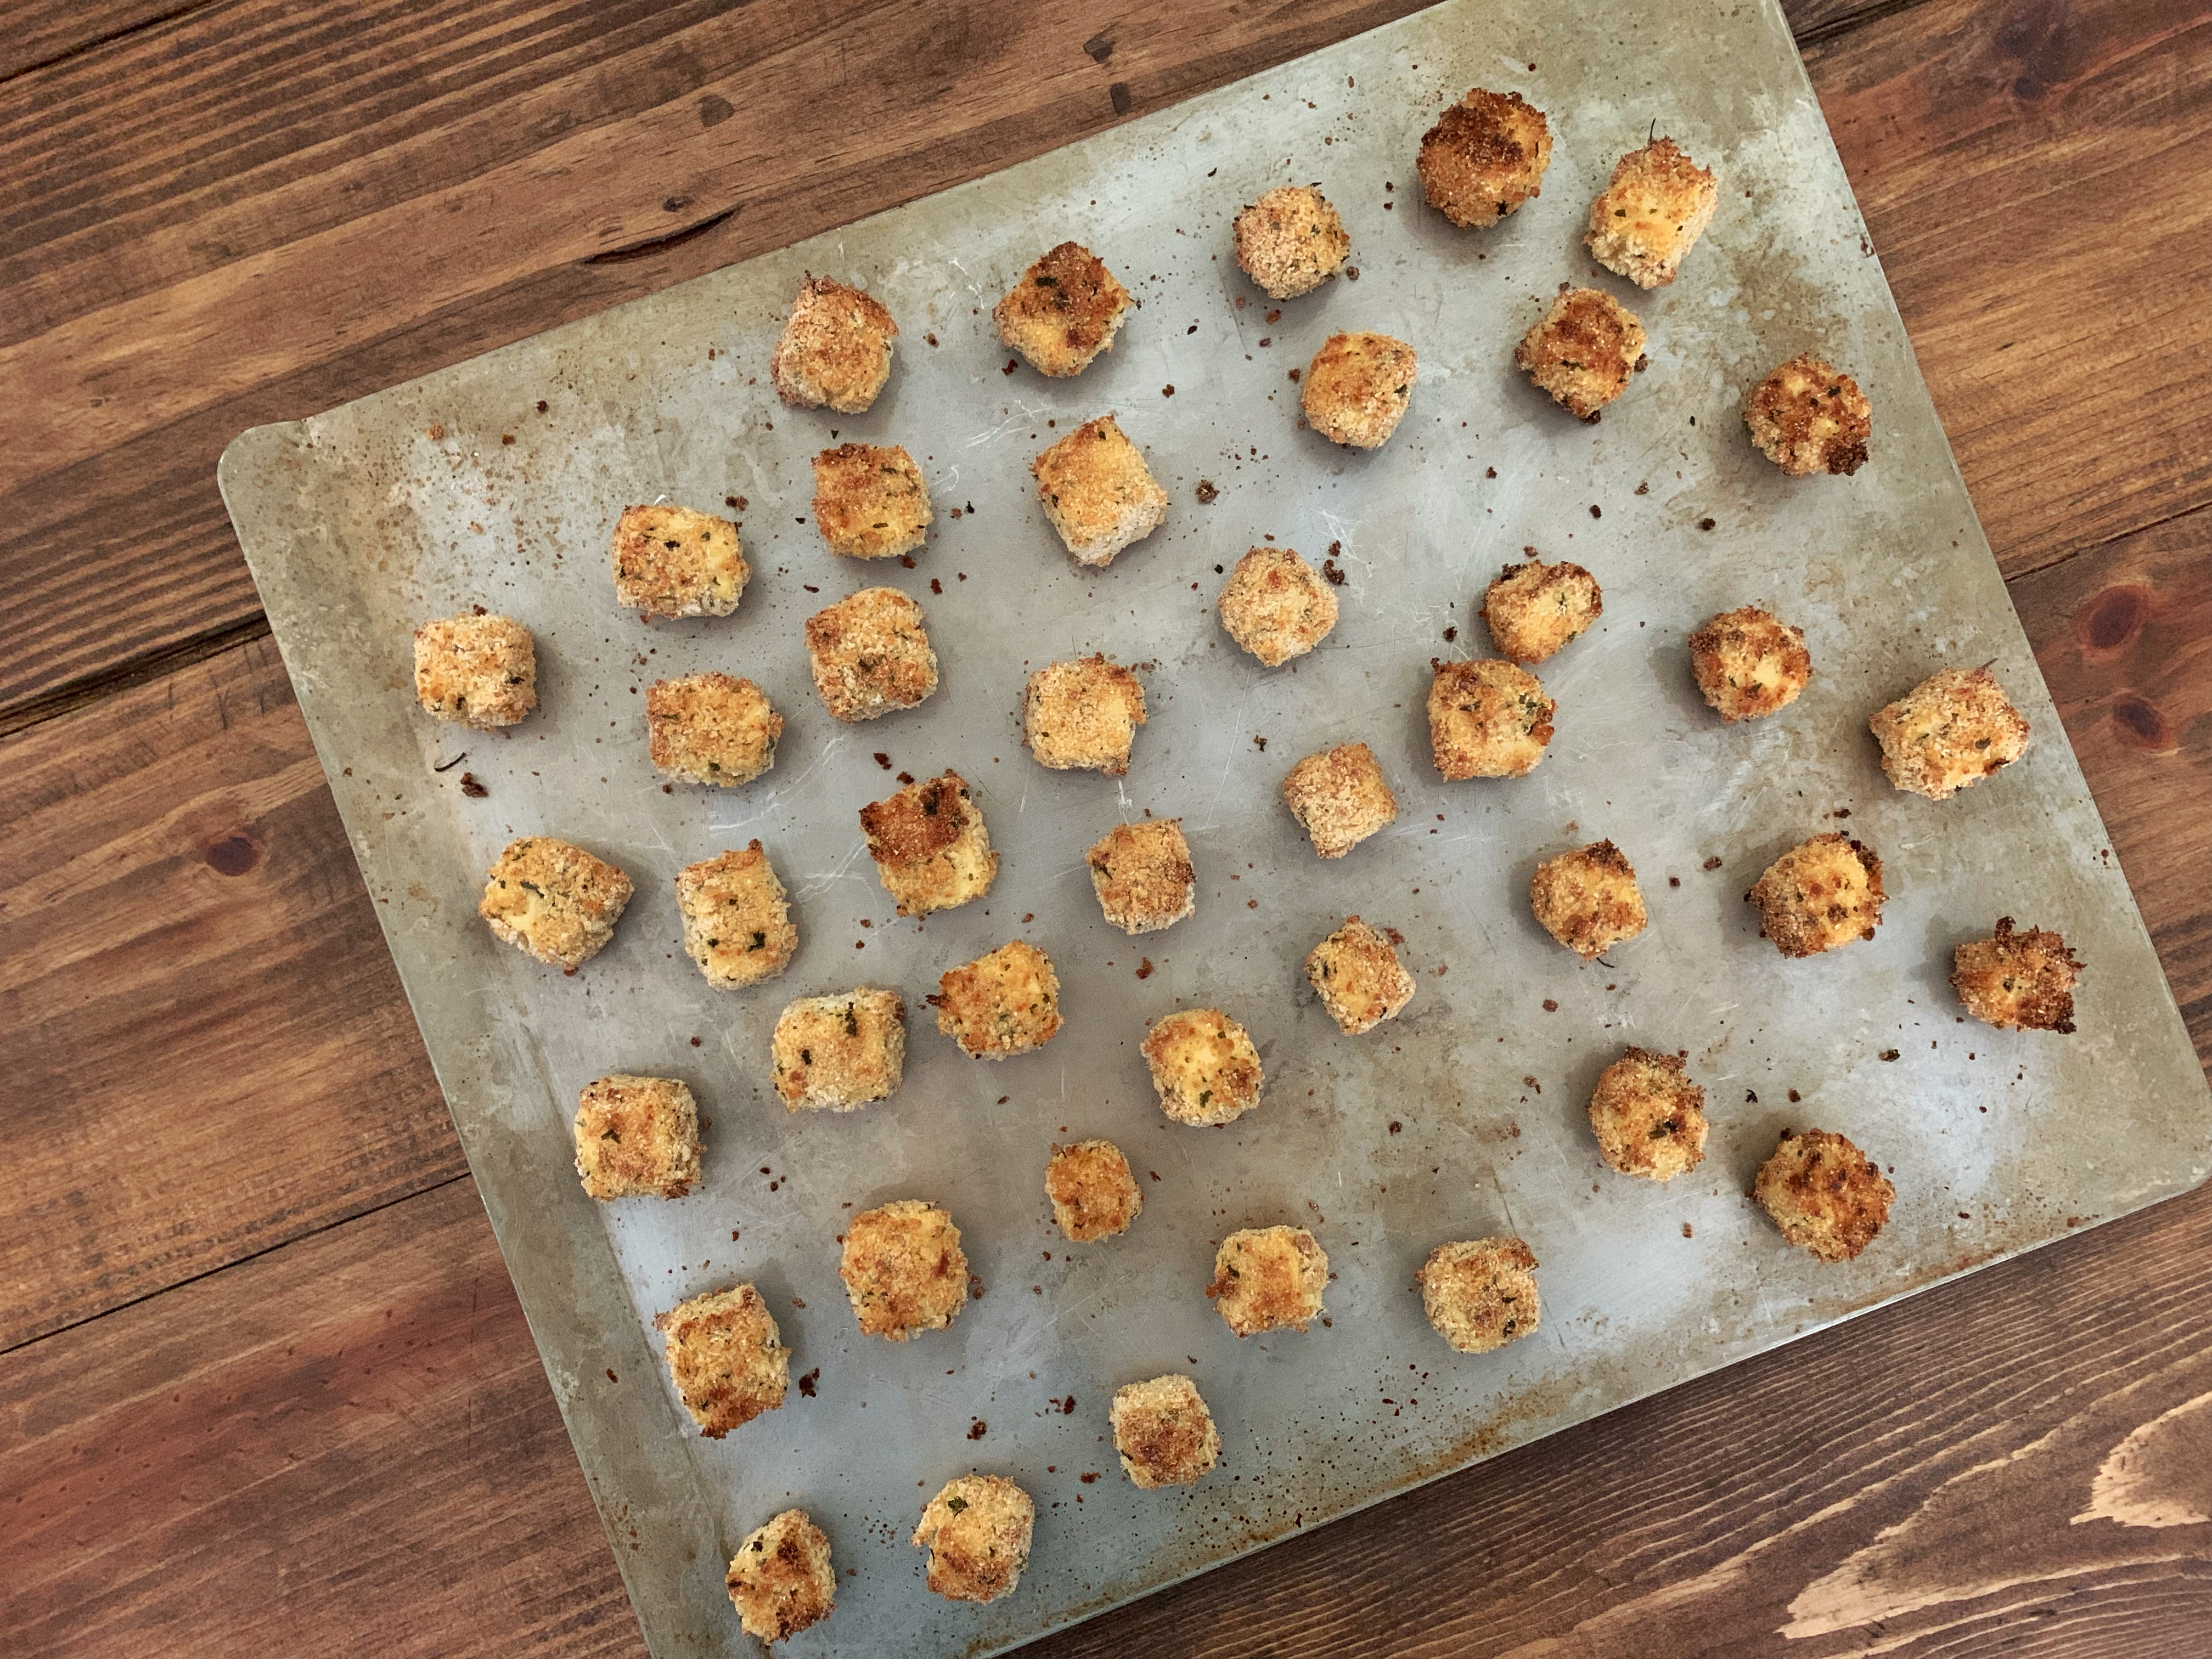 Crispy Oven Fried Tofu Nuggets on a sheet pan after baking